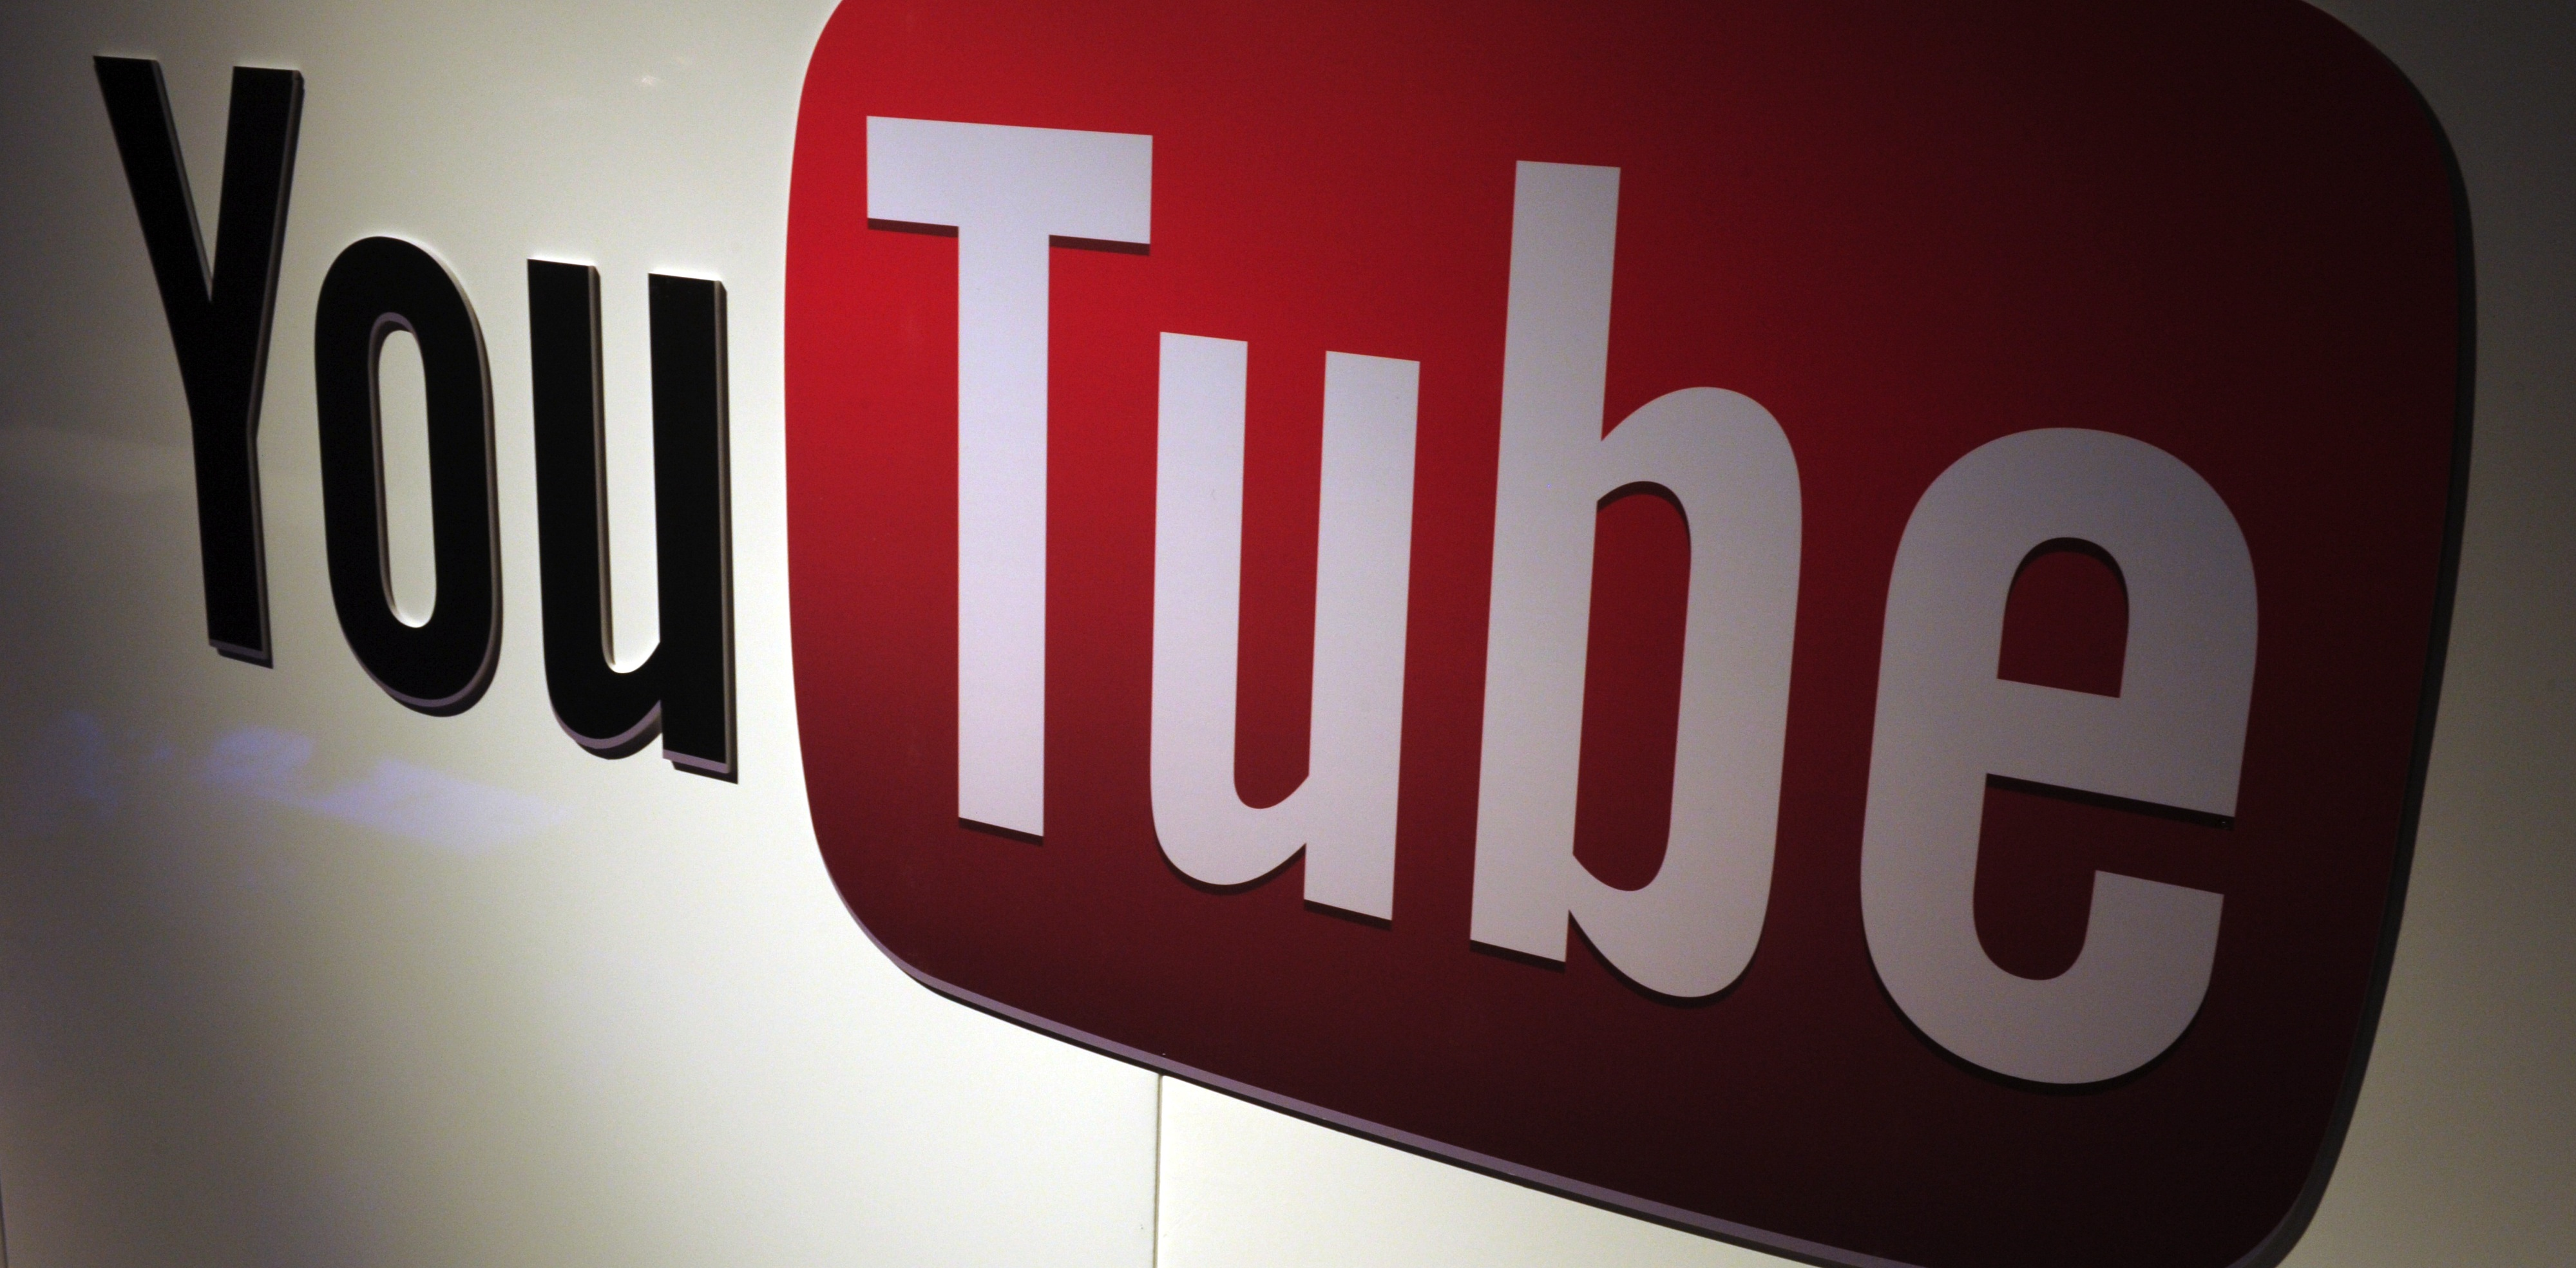 YouTube co-founder asks: 'Why the f*** do I need a Google+ account to comment on a video?'